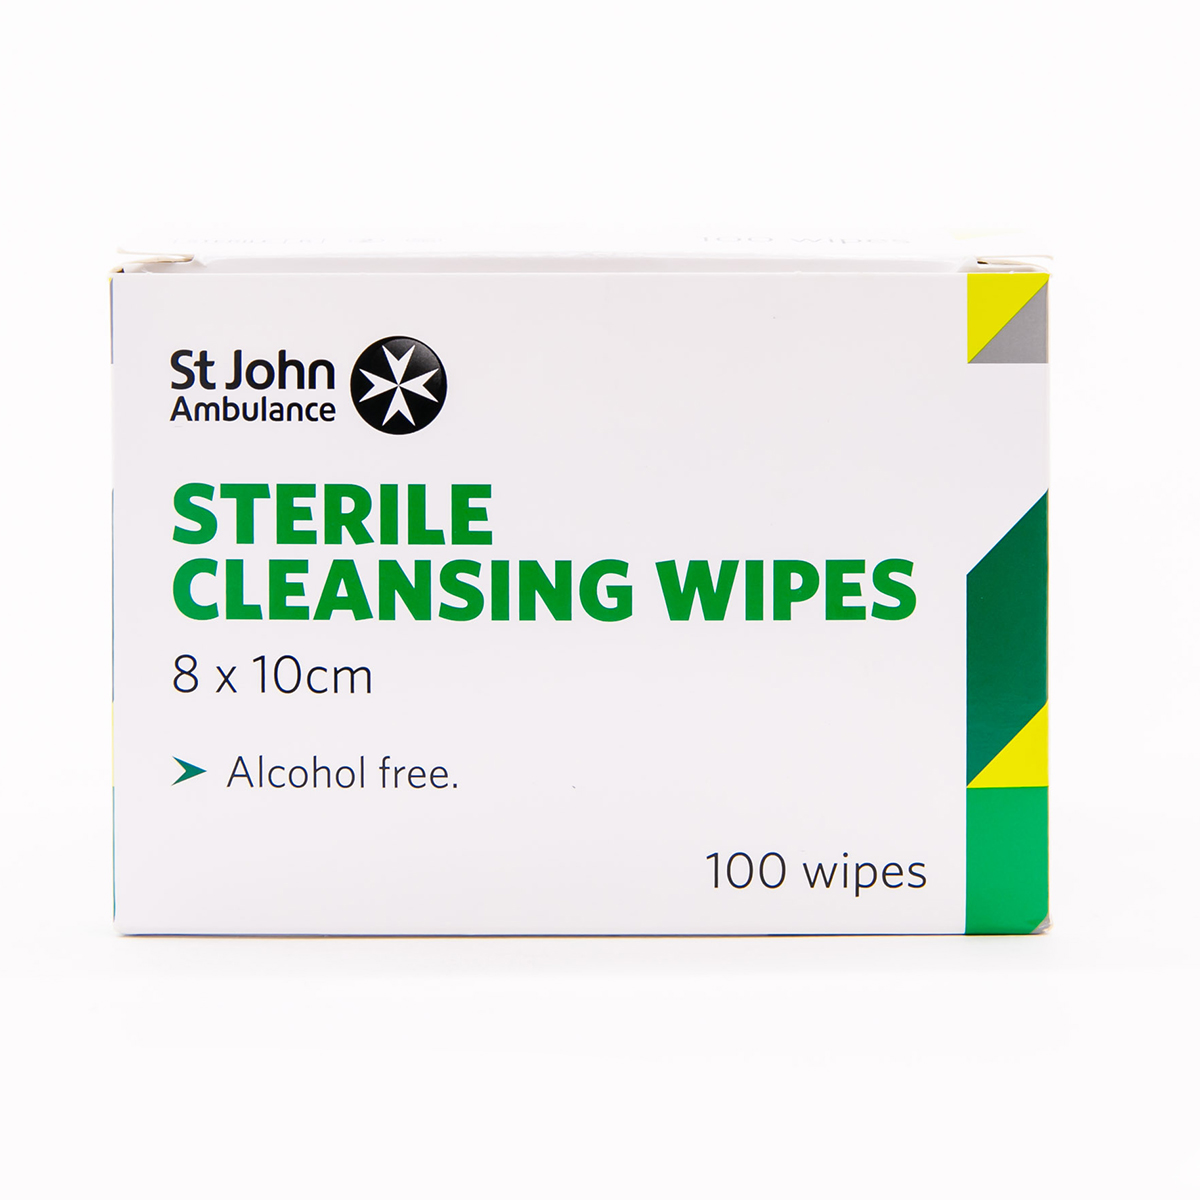 Pack of 100 St John Ambulance Sterile Cleansing Wipes